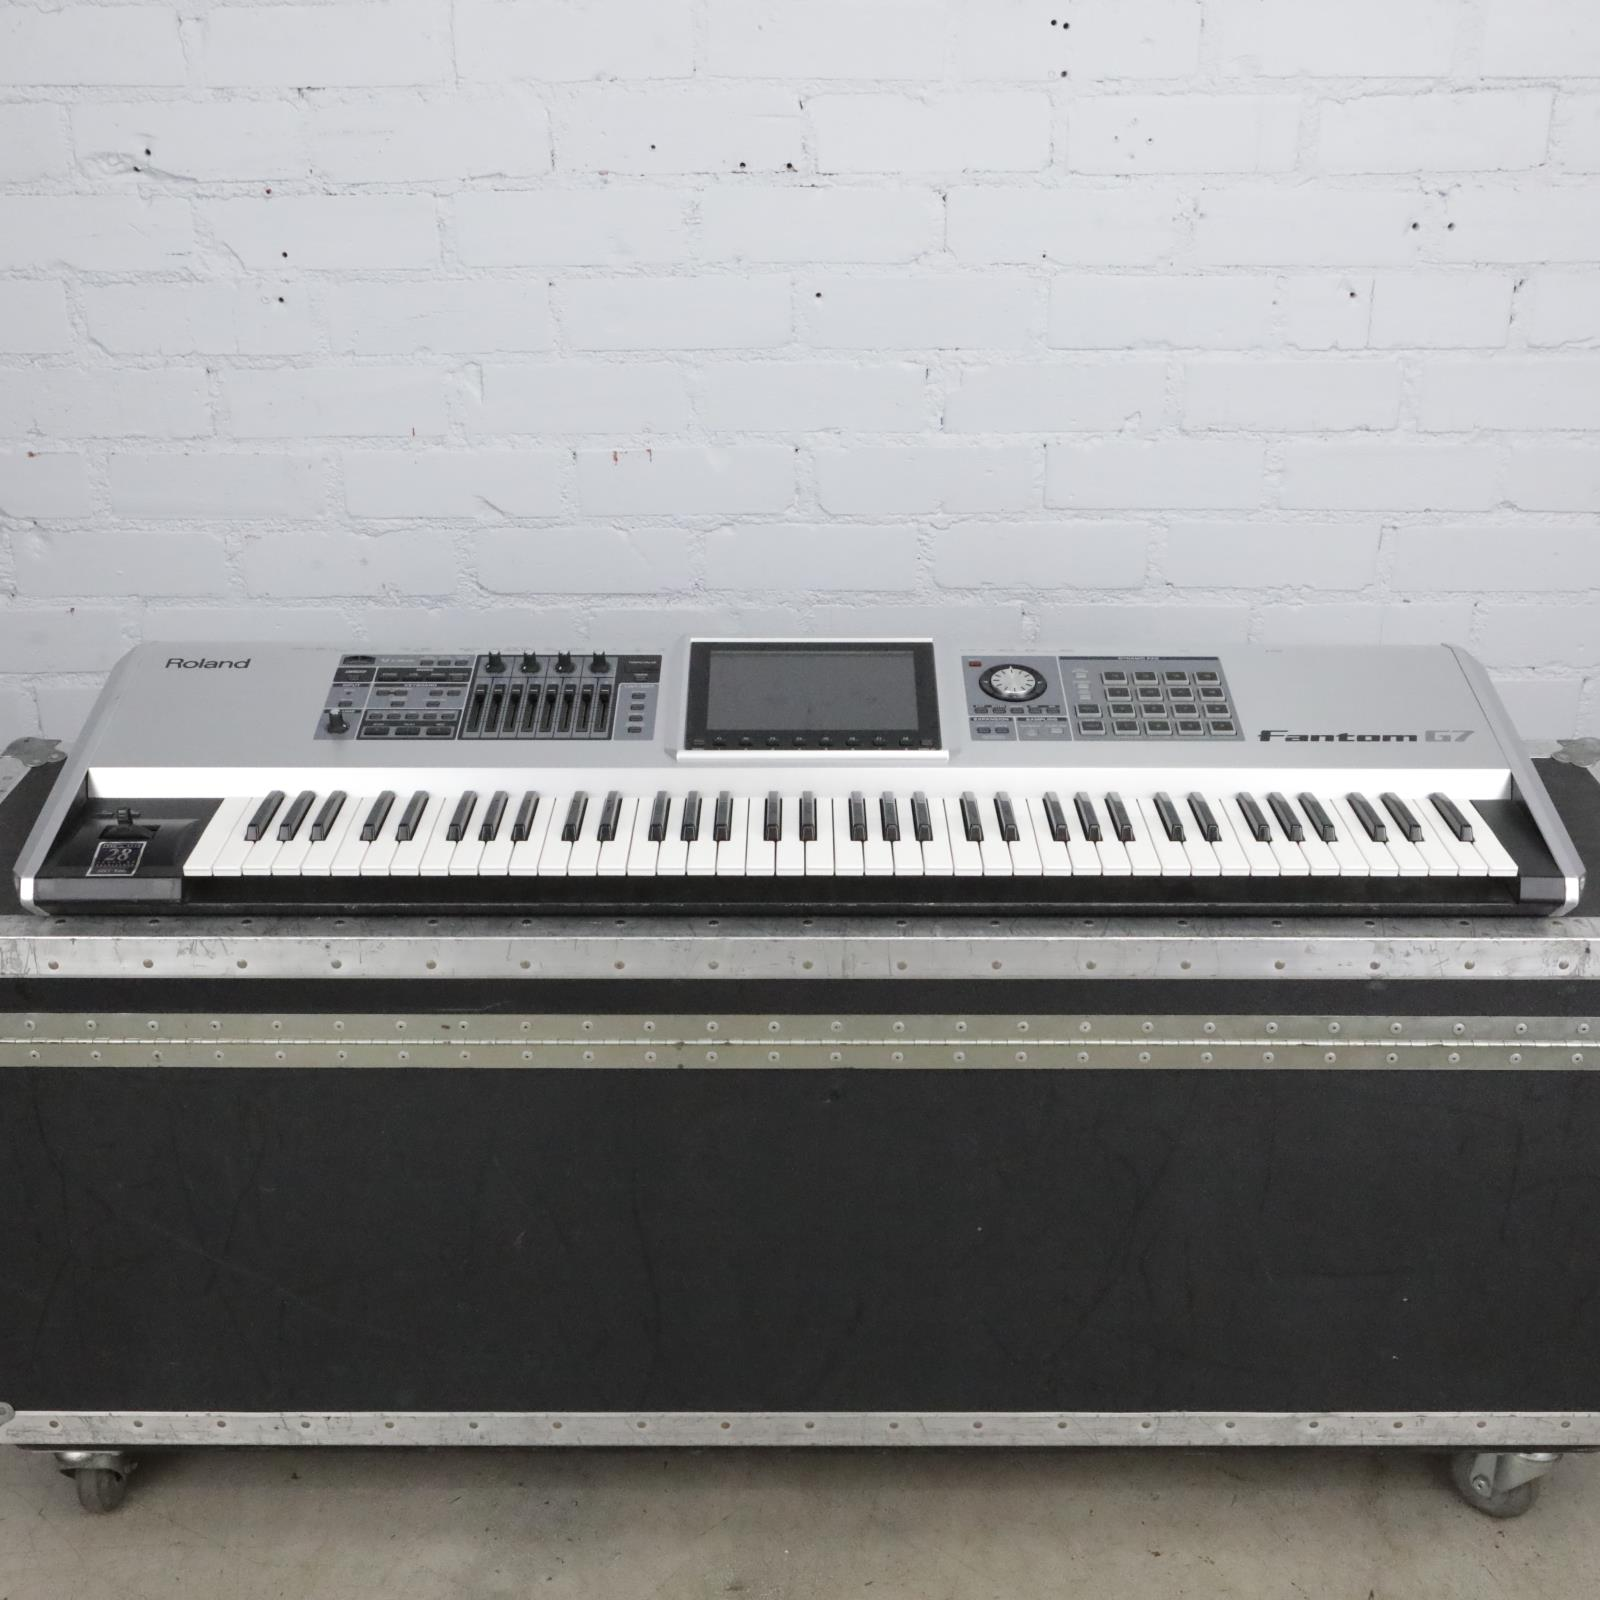 Roland Fantom G7 76-Note Synthesizer Keyboard w/ A&S Road Case #41613